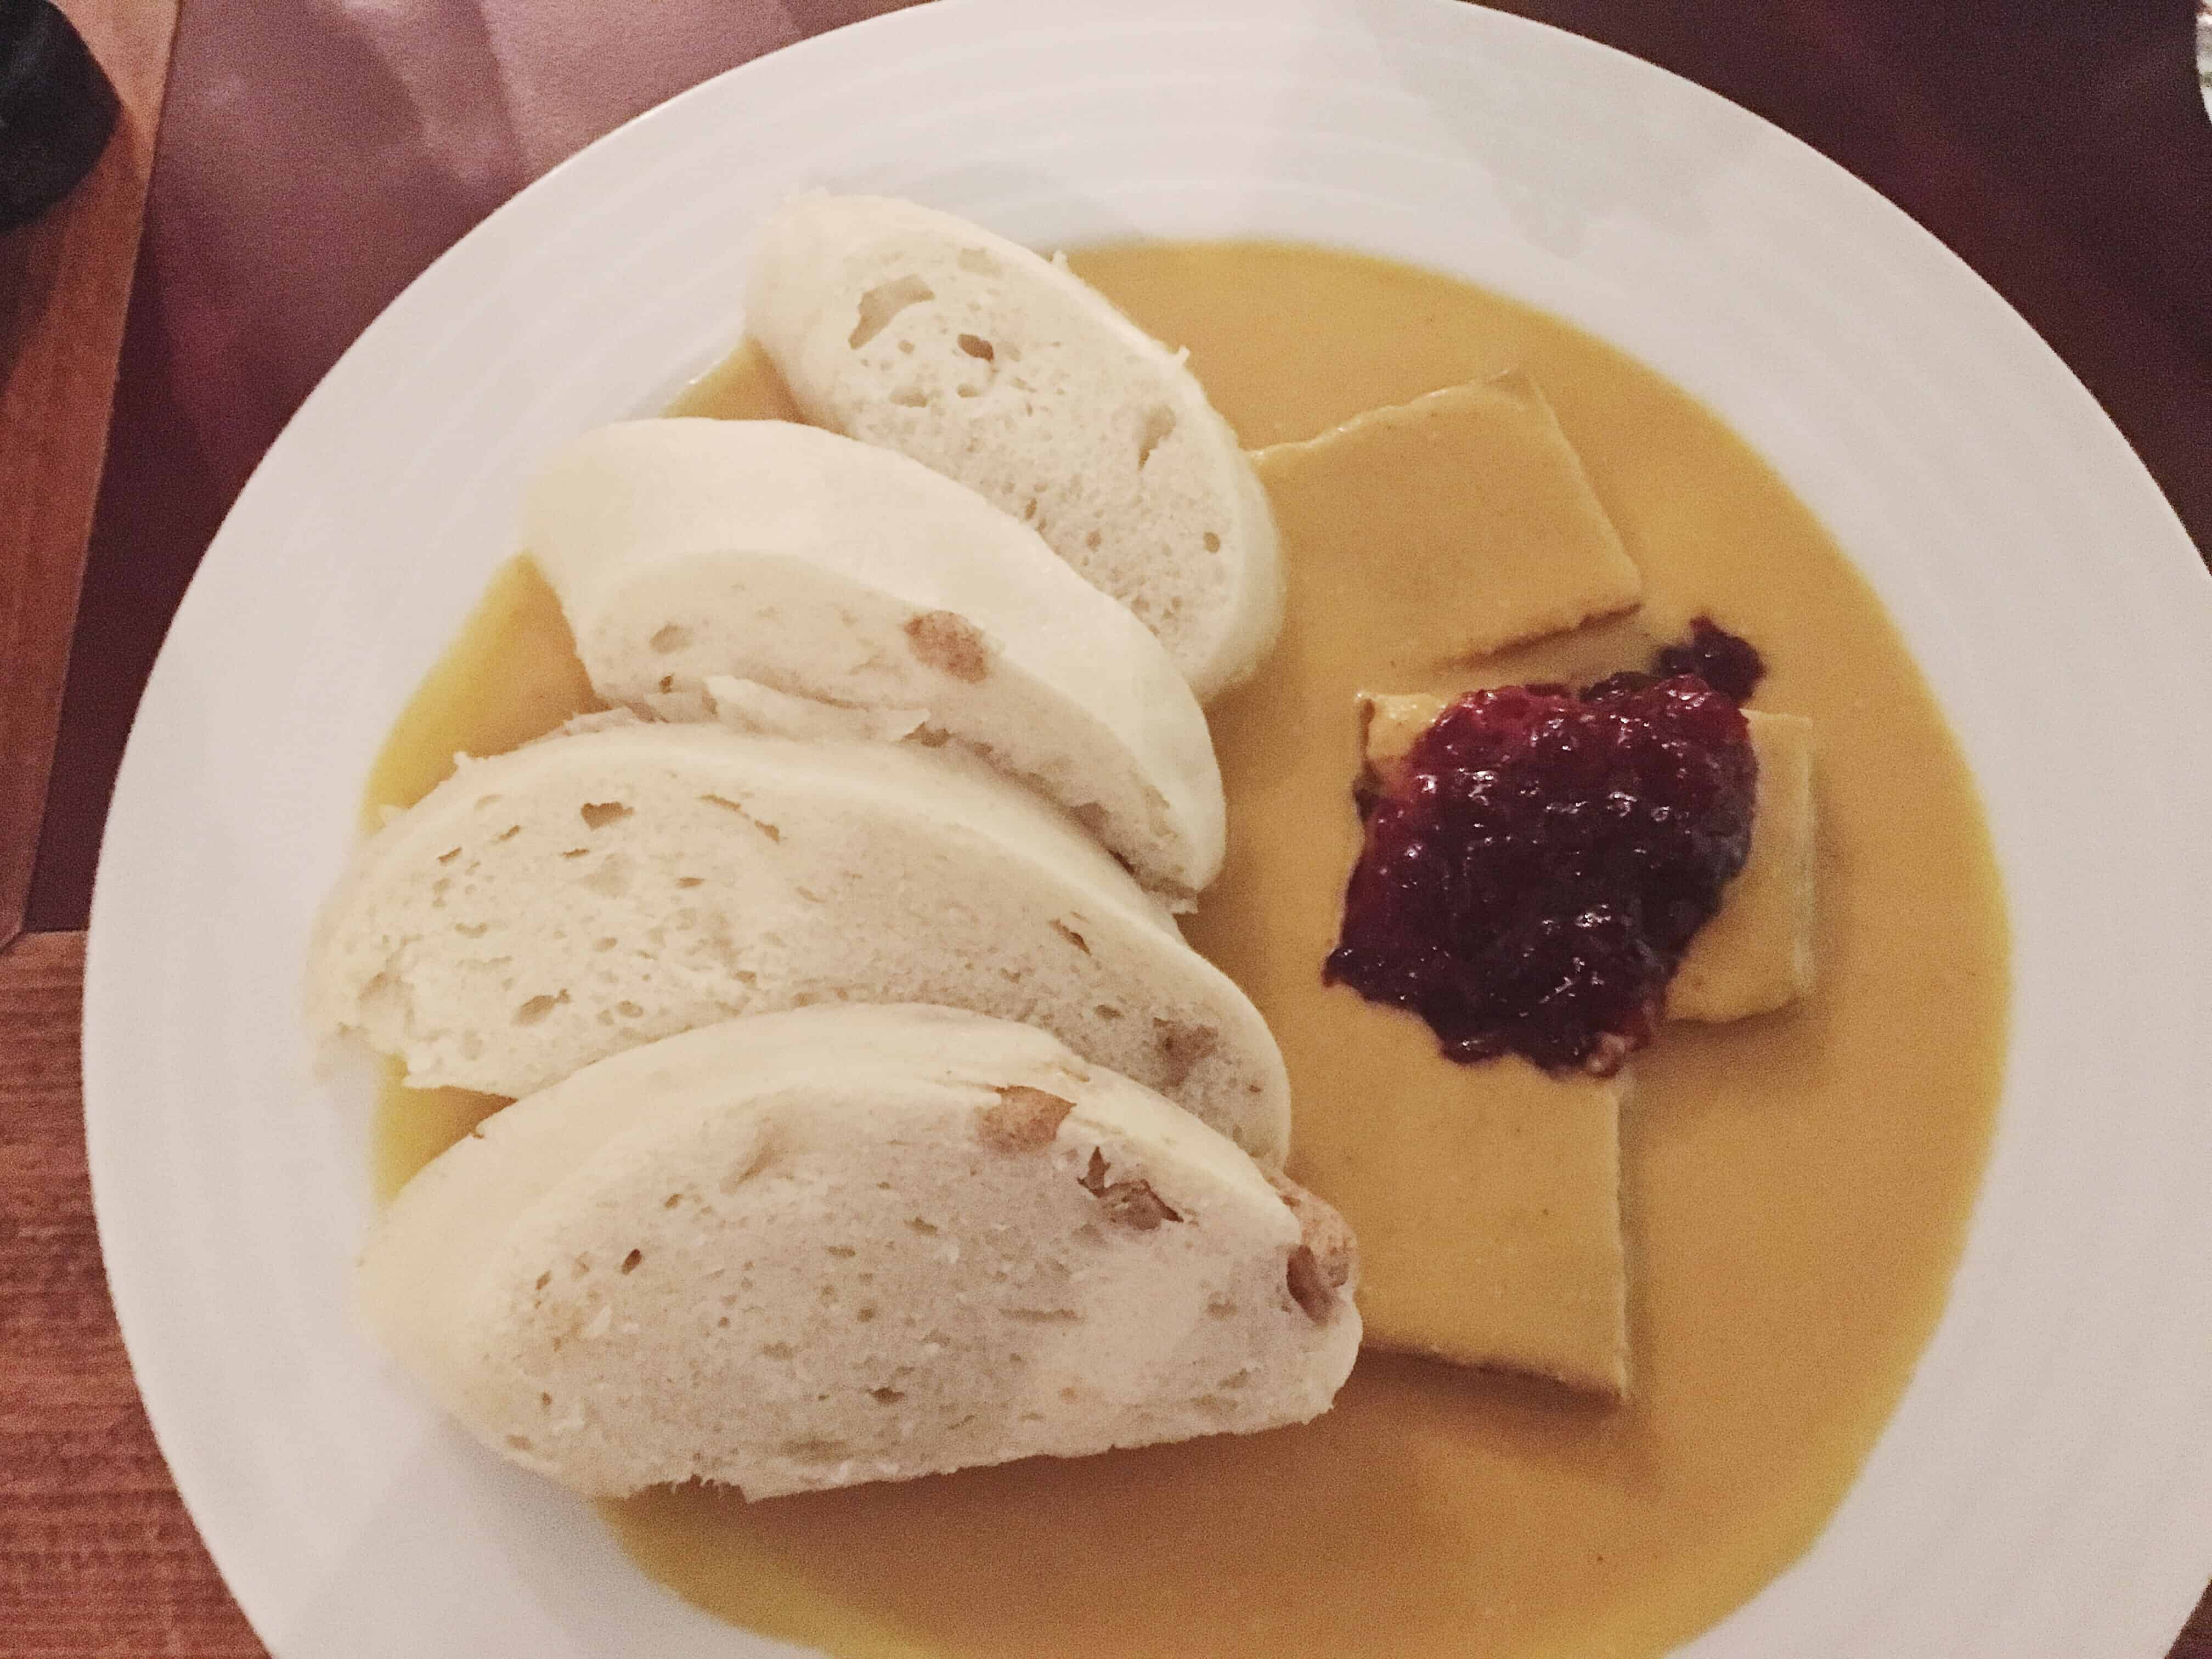 Svíčková is a delicious traditional dish from the Czech Republic, made with beef (tempeh if vegetarian), dumplings, cranberries, whipped cream, and a cream sauce